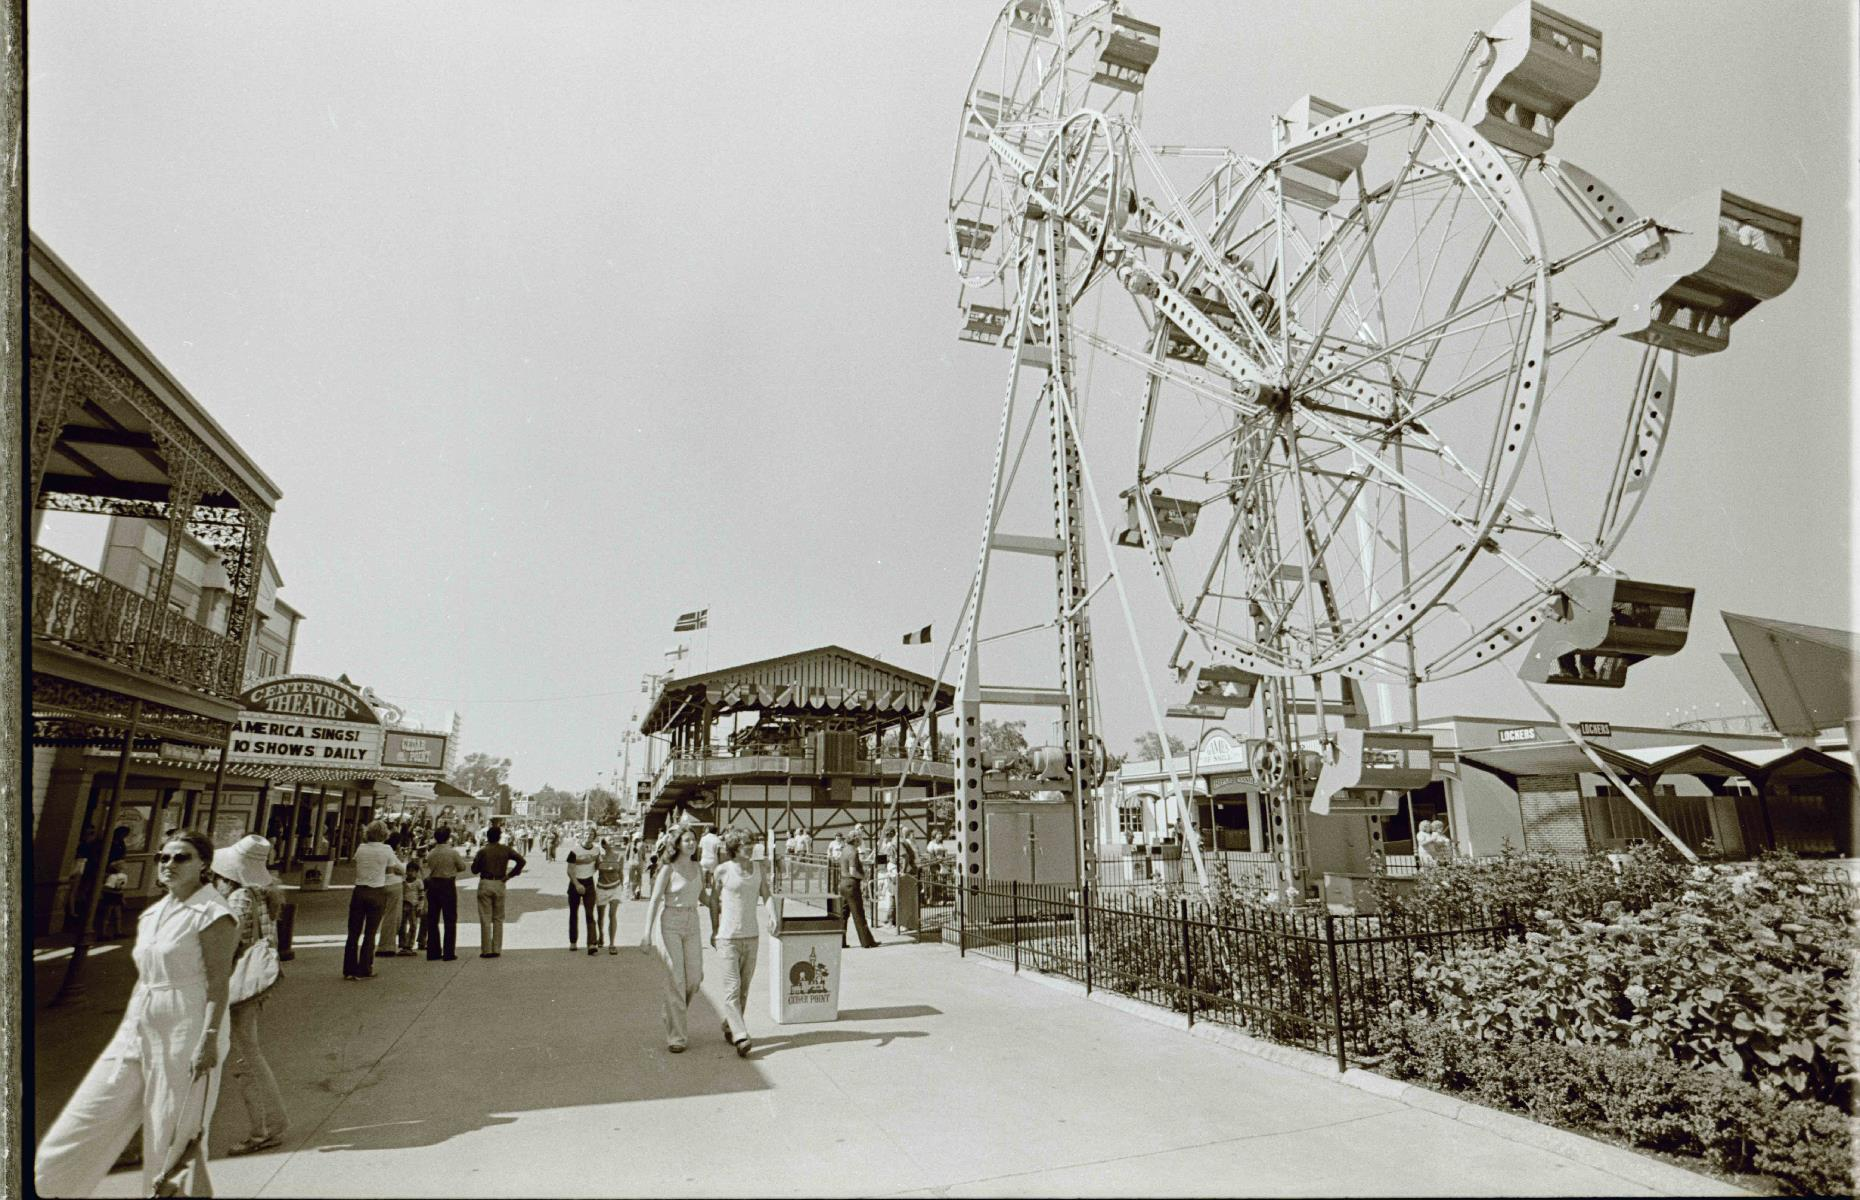 Slide 14 of 35: Even today much of the action happens on the Main Midway (pictured), one of the oldest parts of the park. Cedar Point's Giant Sky Wheel, a vast double Ferris wheel (pictured right) debuted in the 1960s and delighted visitors right up until 1980. Meanwhile, the Centennial Theater (pictured back left) continues to entertain audiences as the Jack Aldrich Theater today.